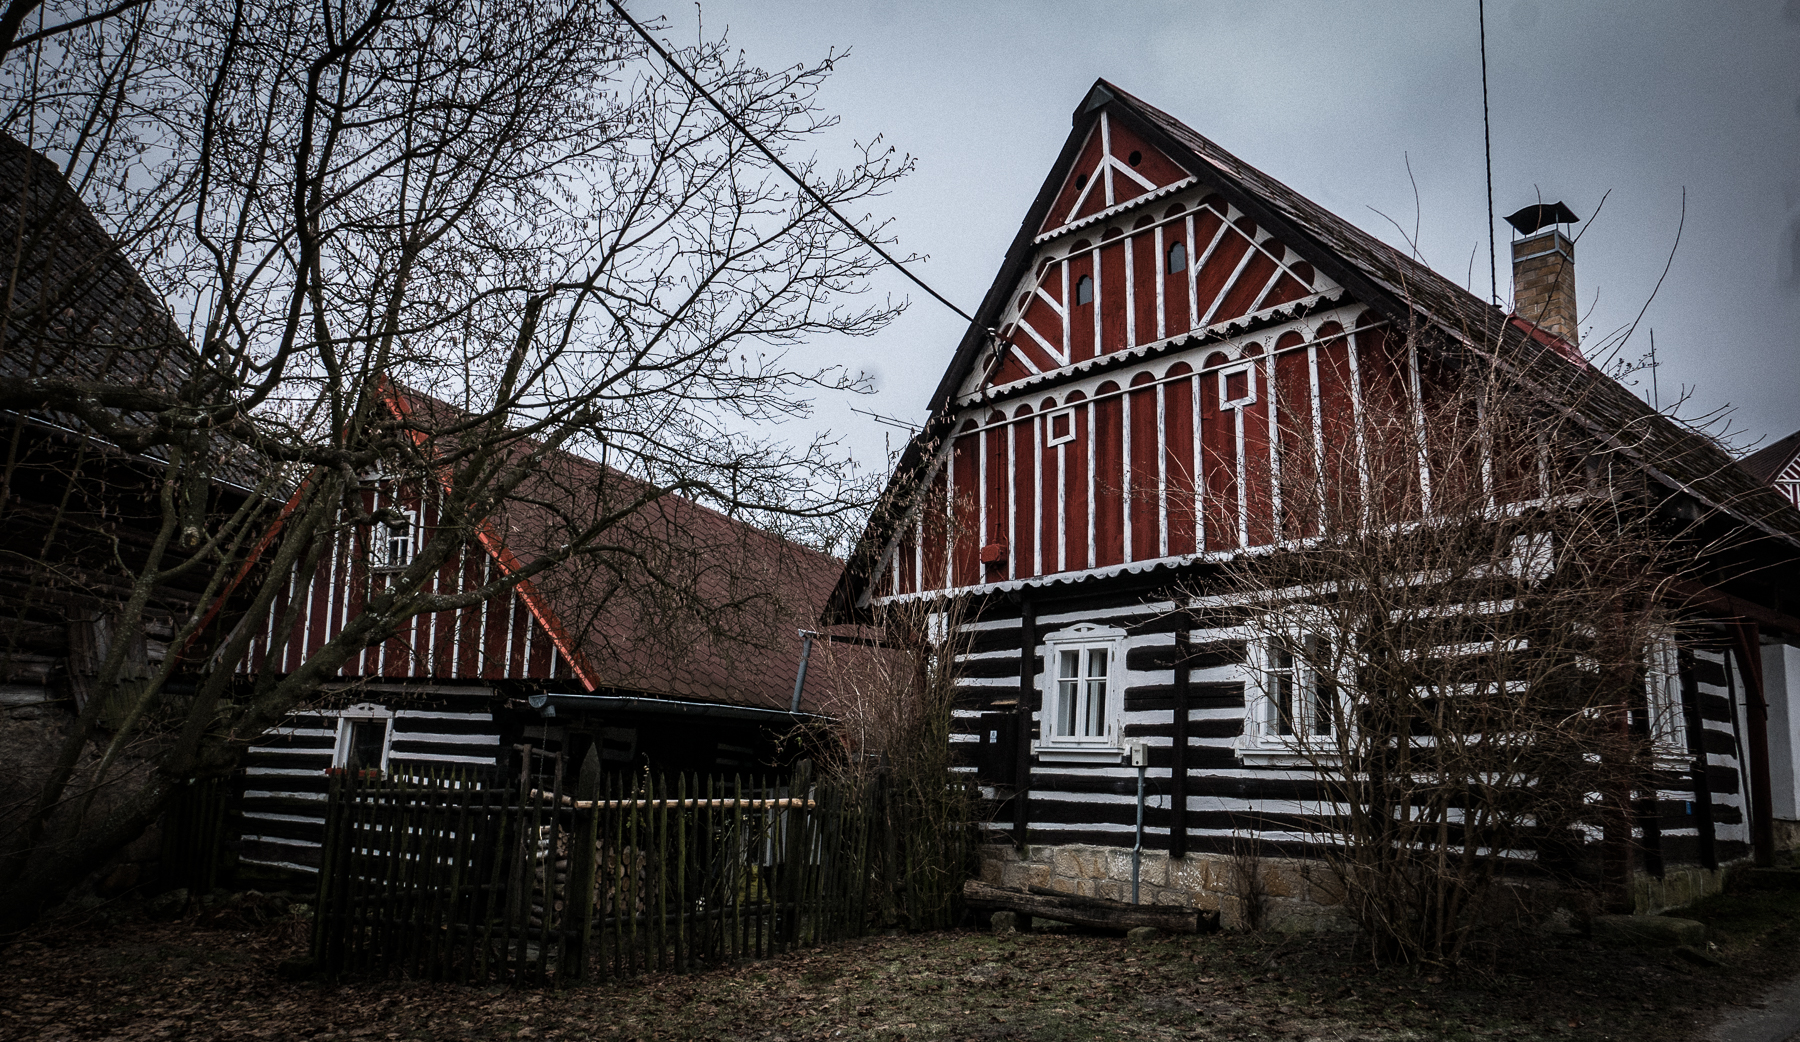 Winter photo workshop in Bohemia. Mala skala wooden dwelling